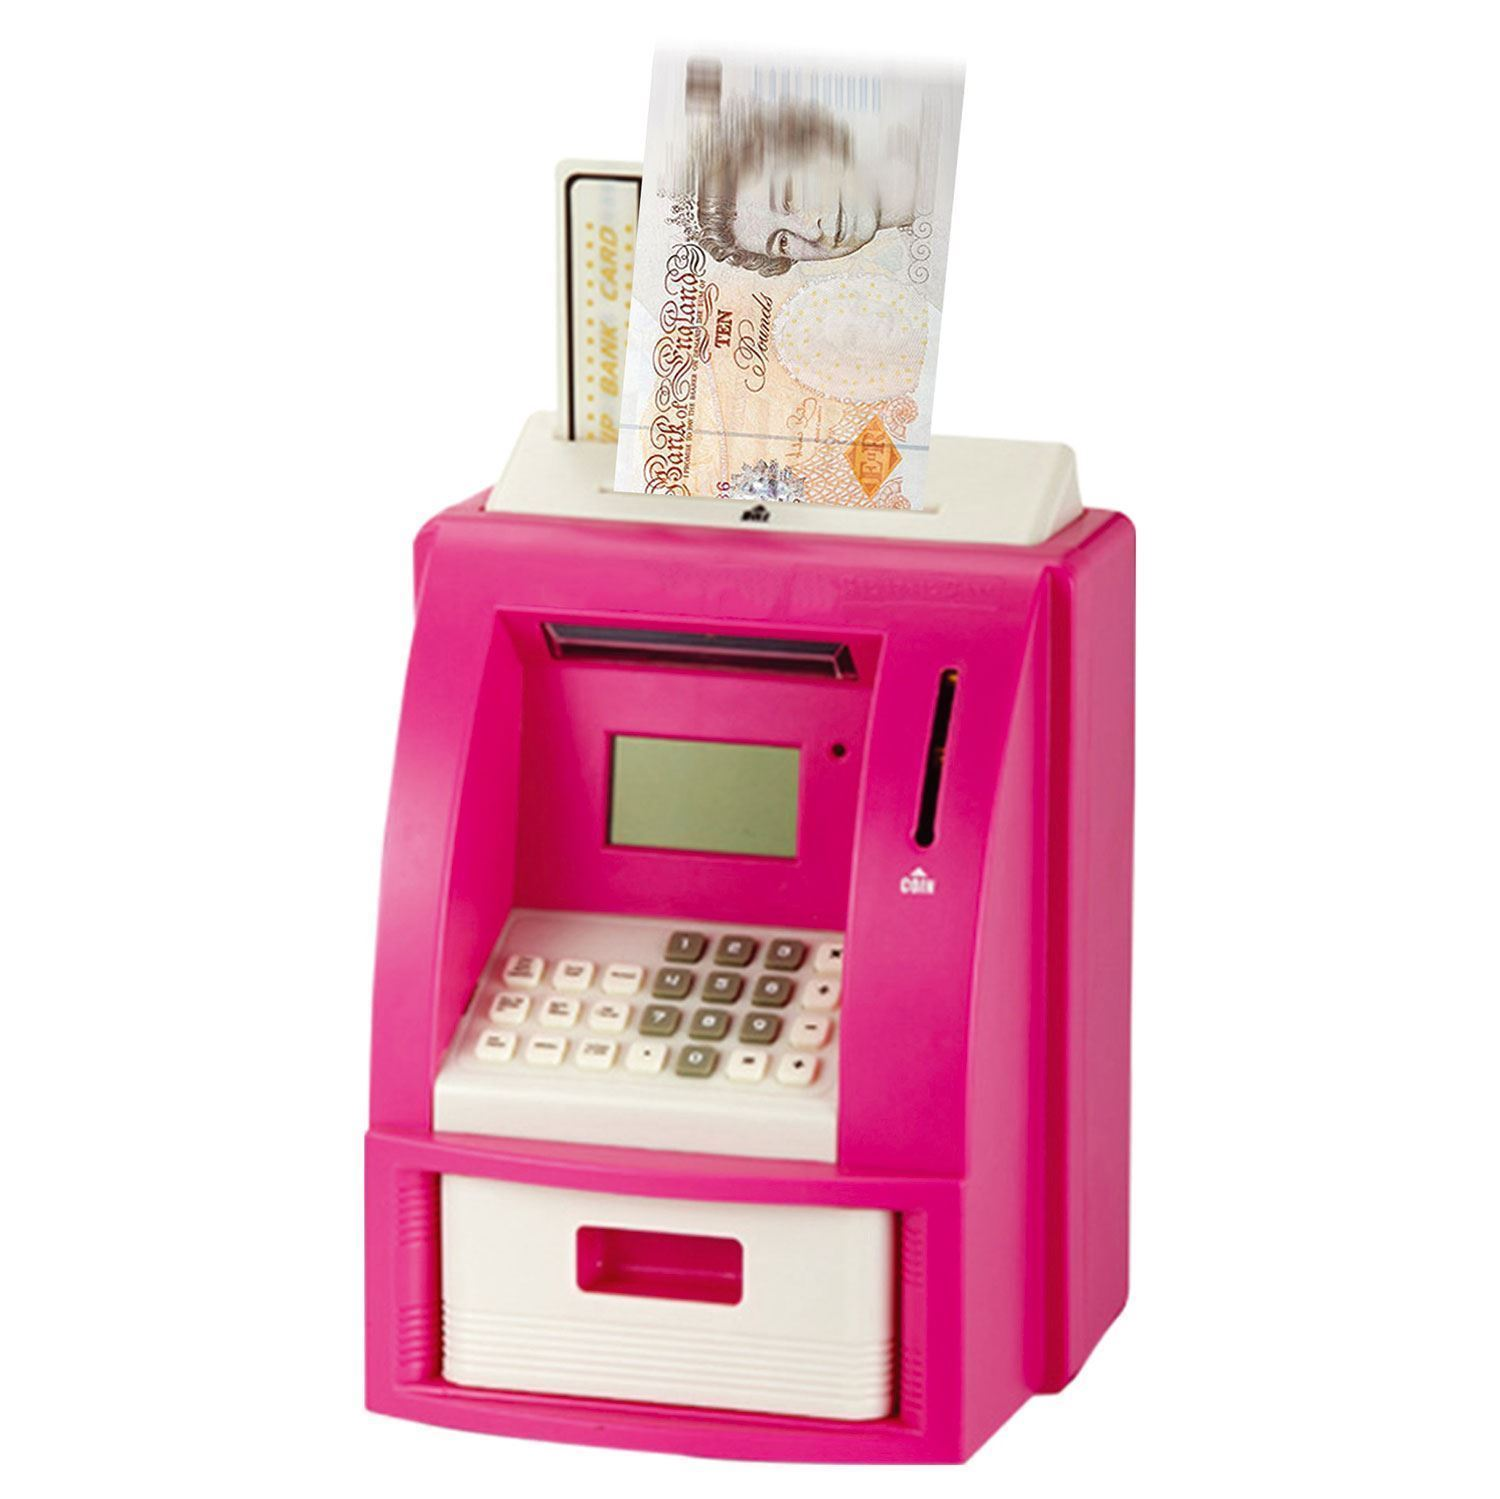 Piggy Bank Adult Pink Or Black Electric Coin Atm Money Counting Savings